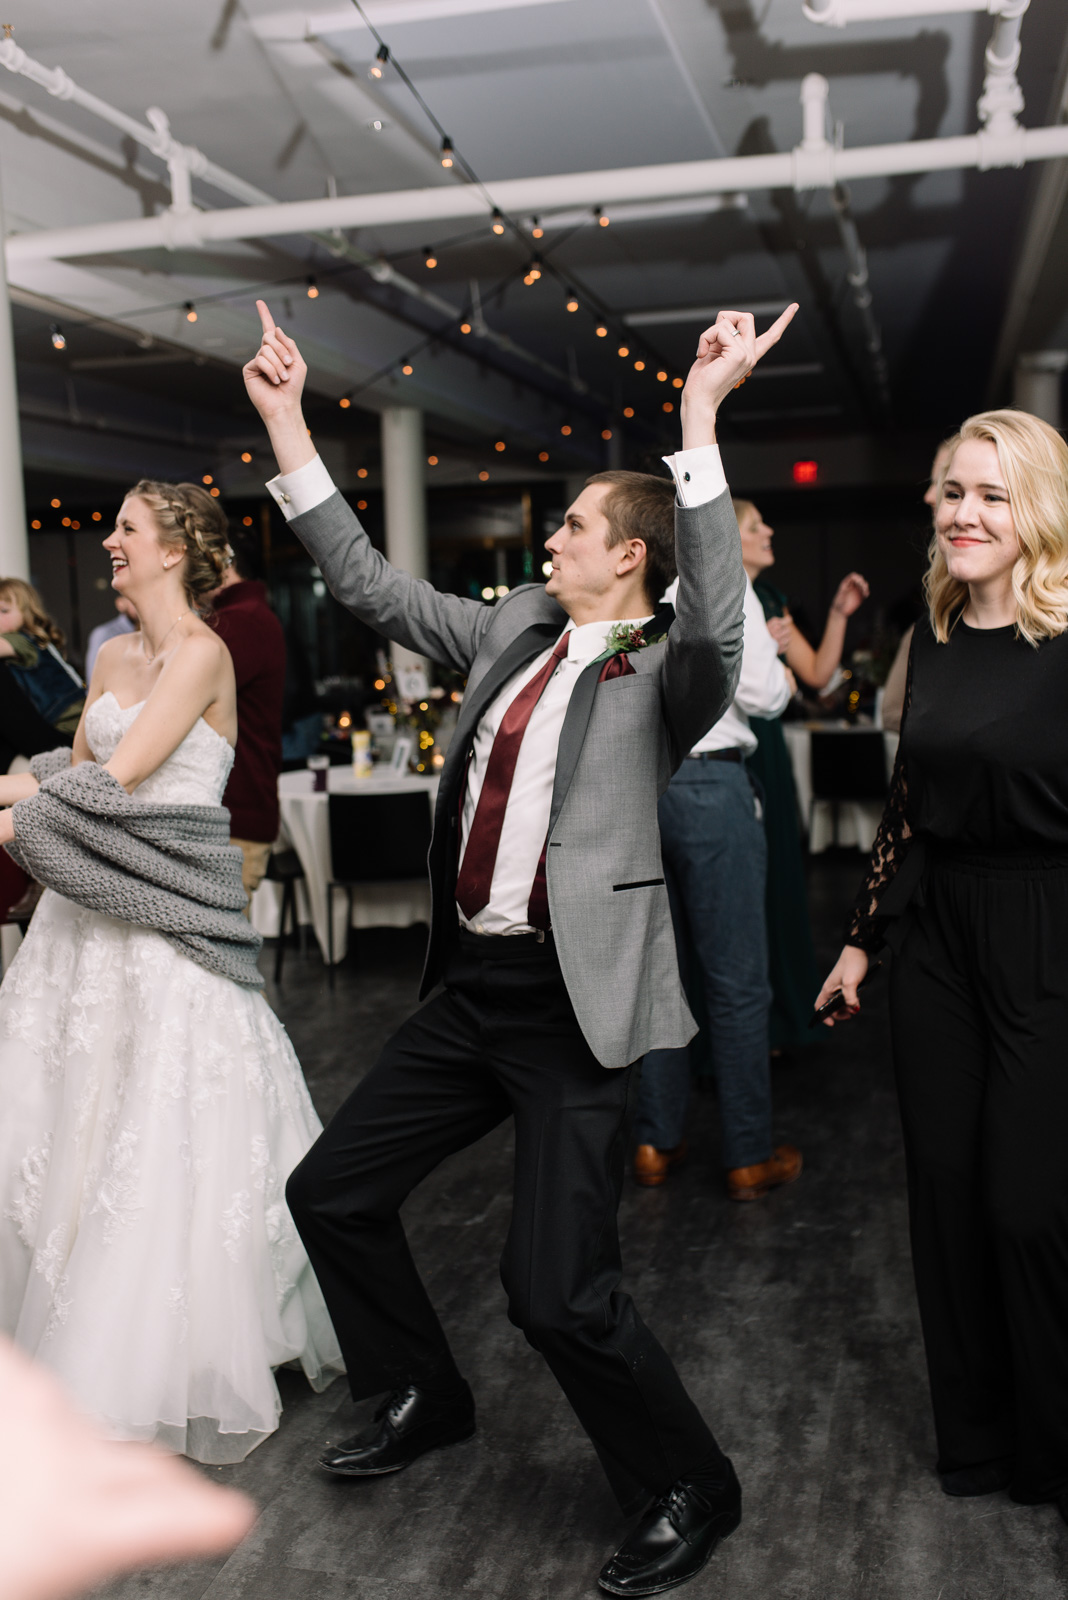 wedding guests dancing eastbank wedding venue bistro lights